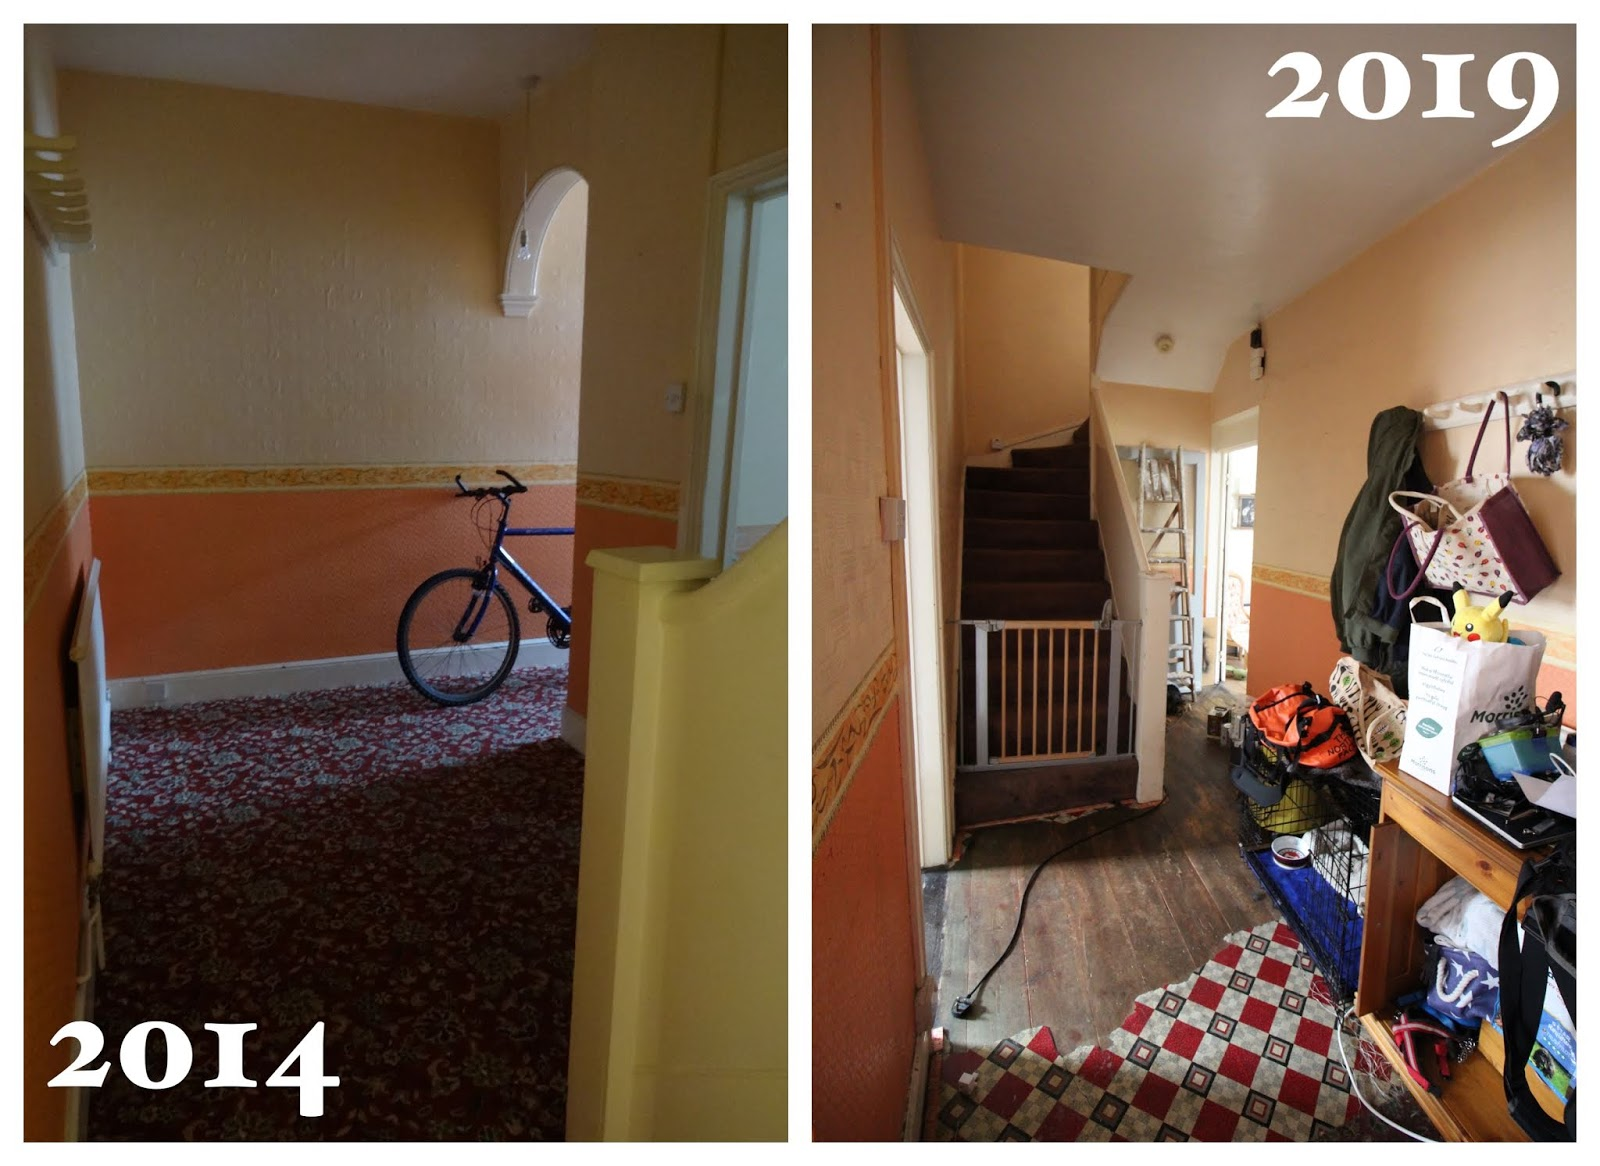 hallway renovation before and after 5 years